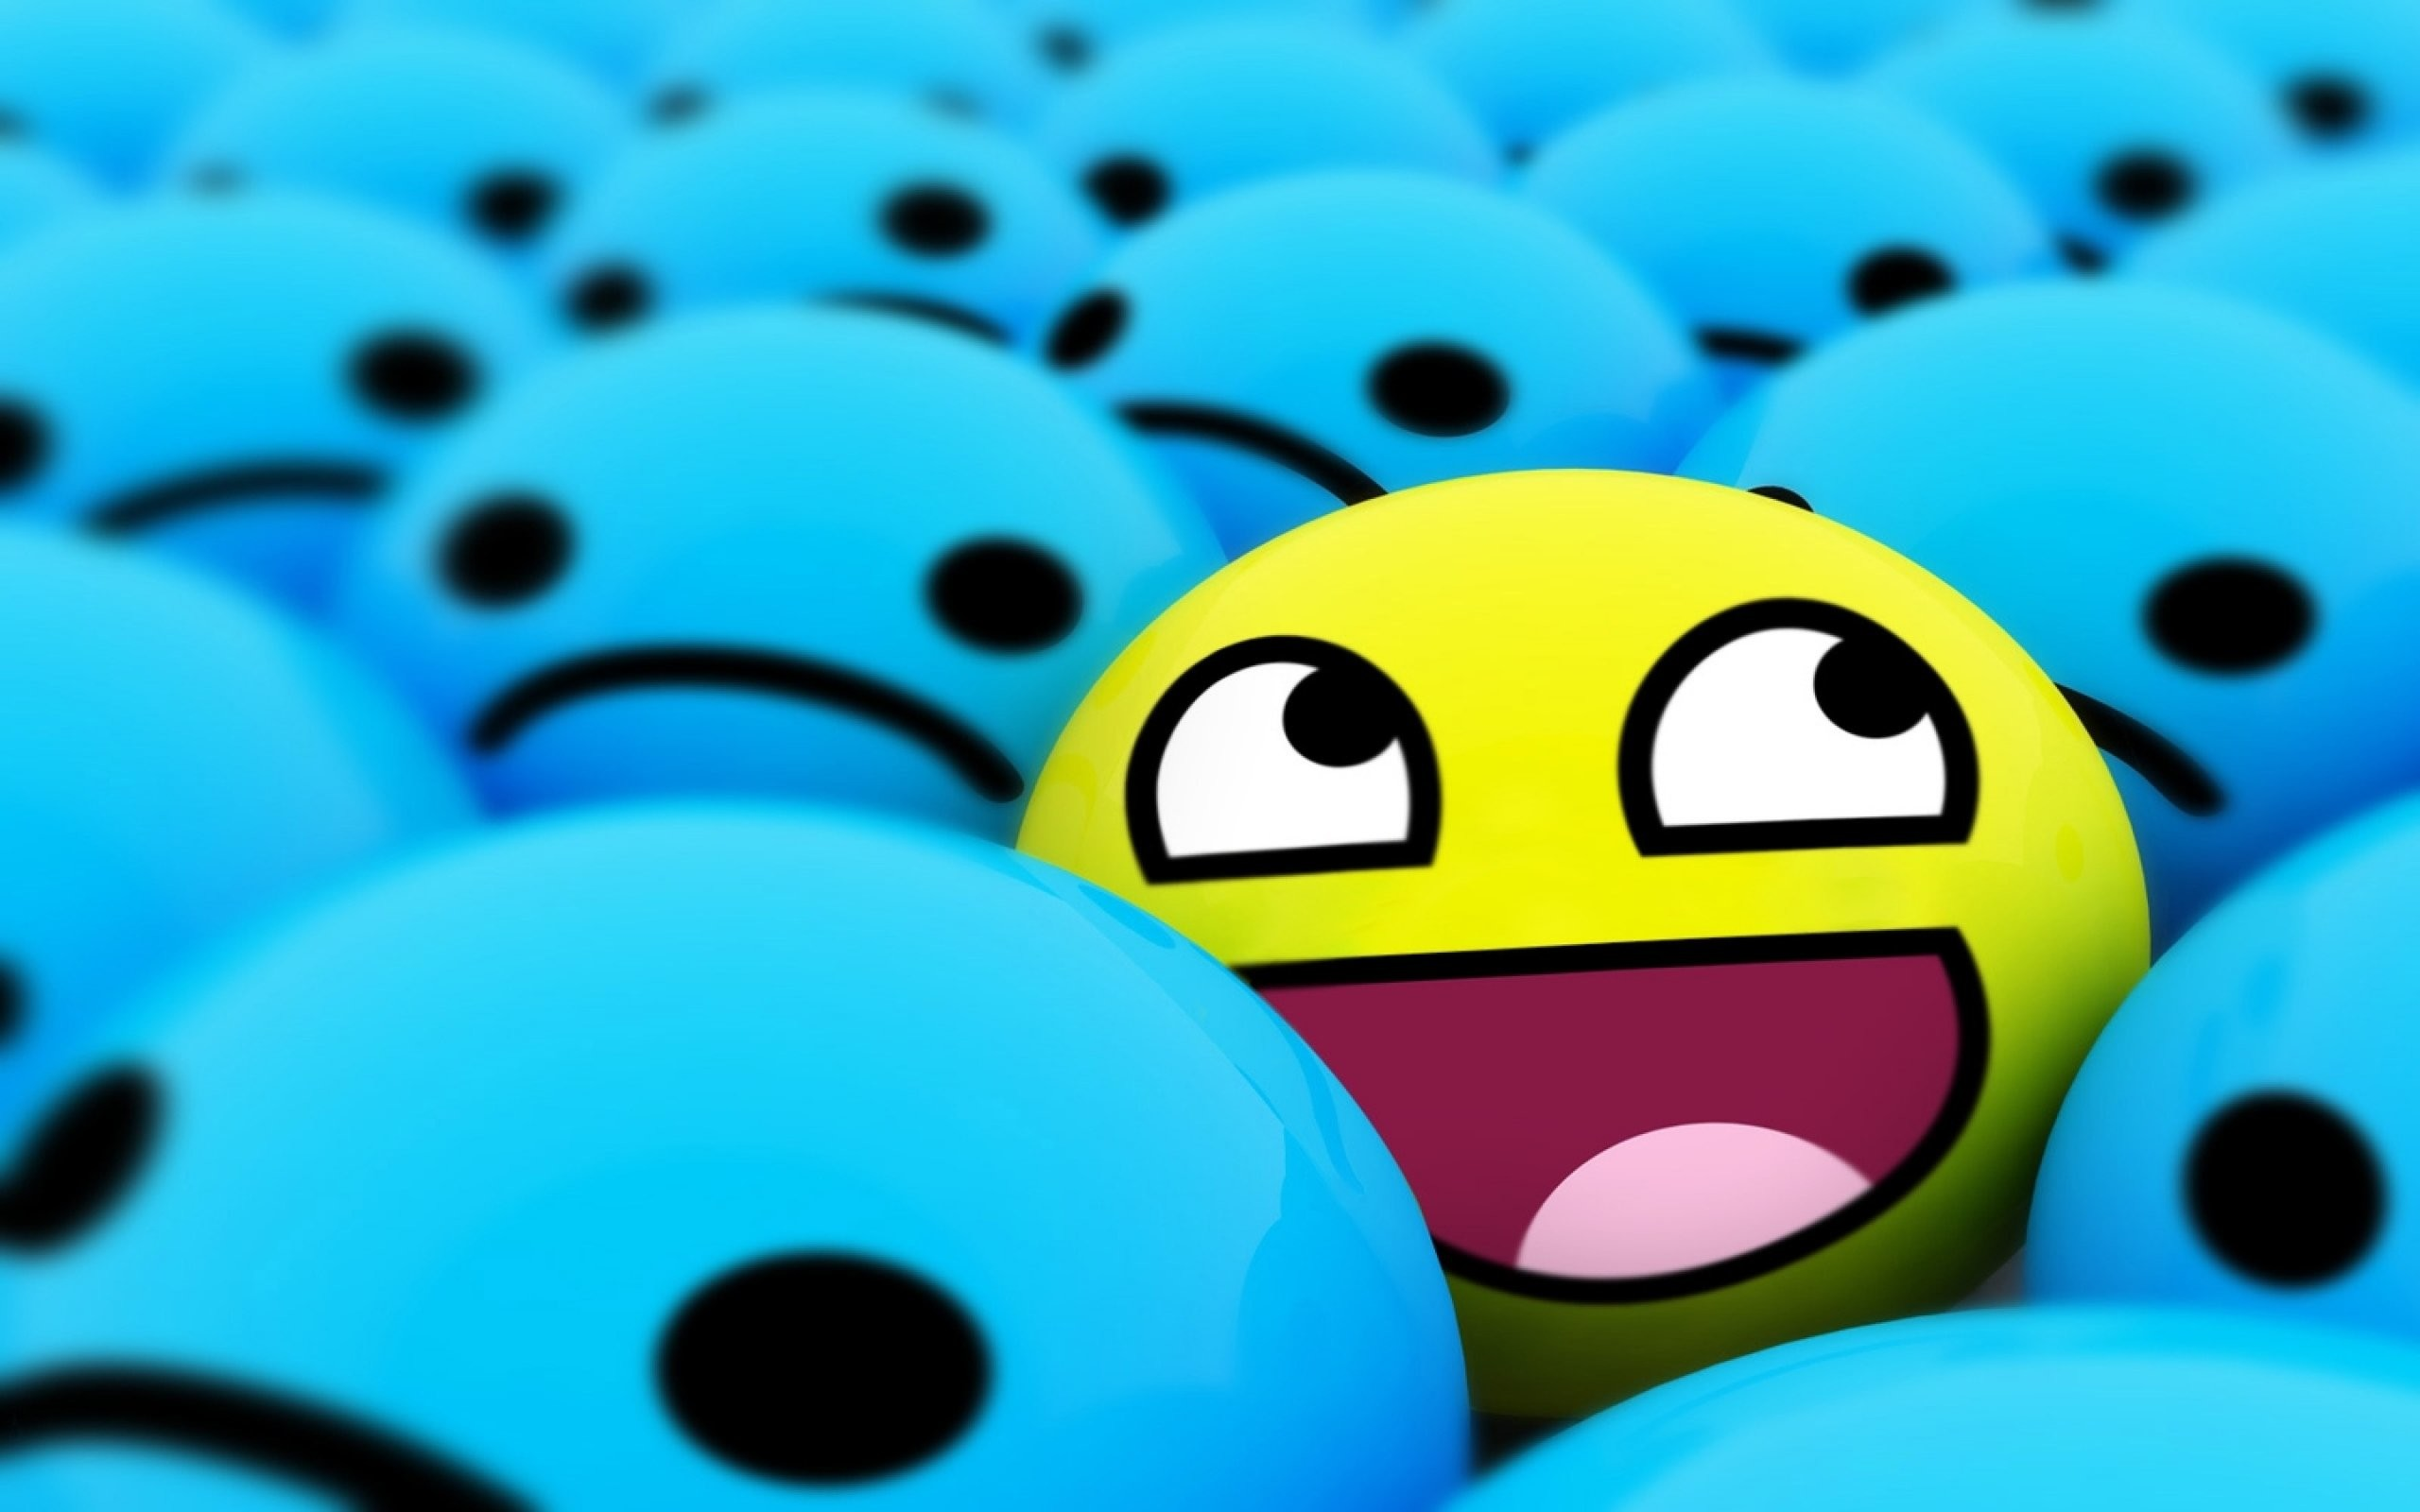 2560x1600 Awesome Smiley Face 871541